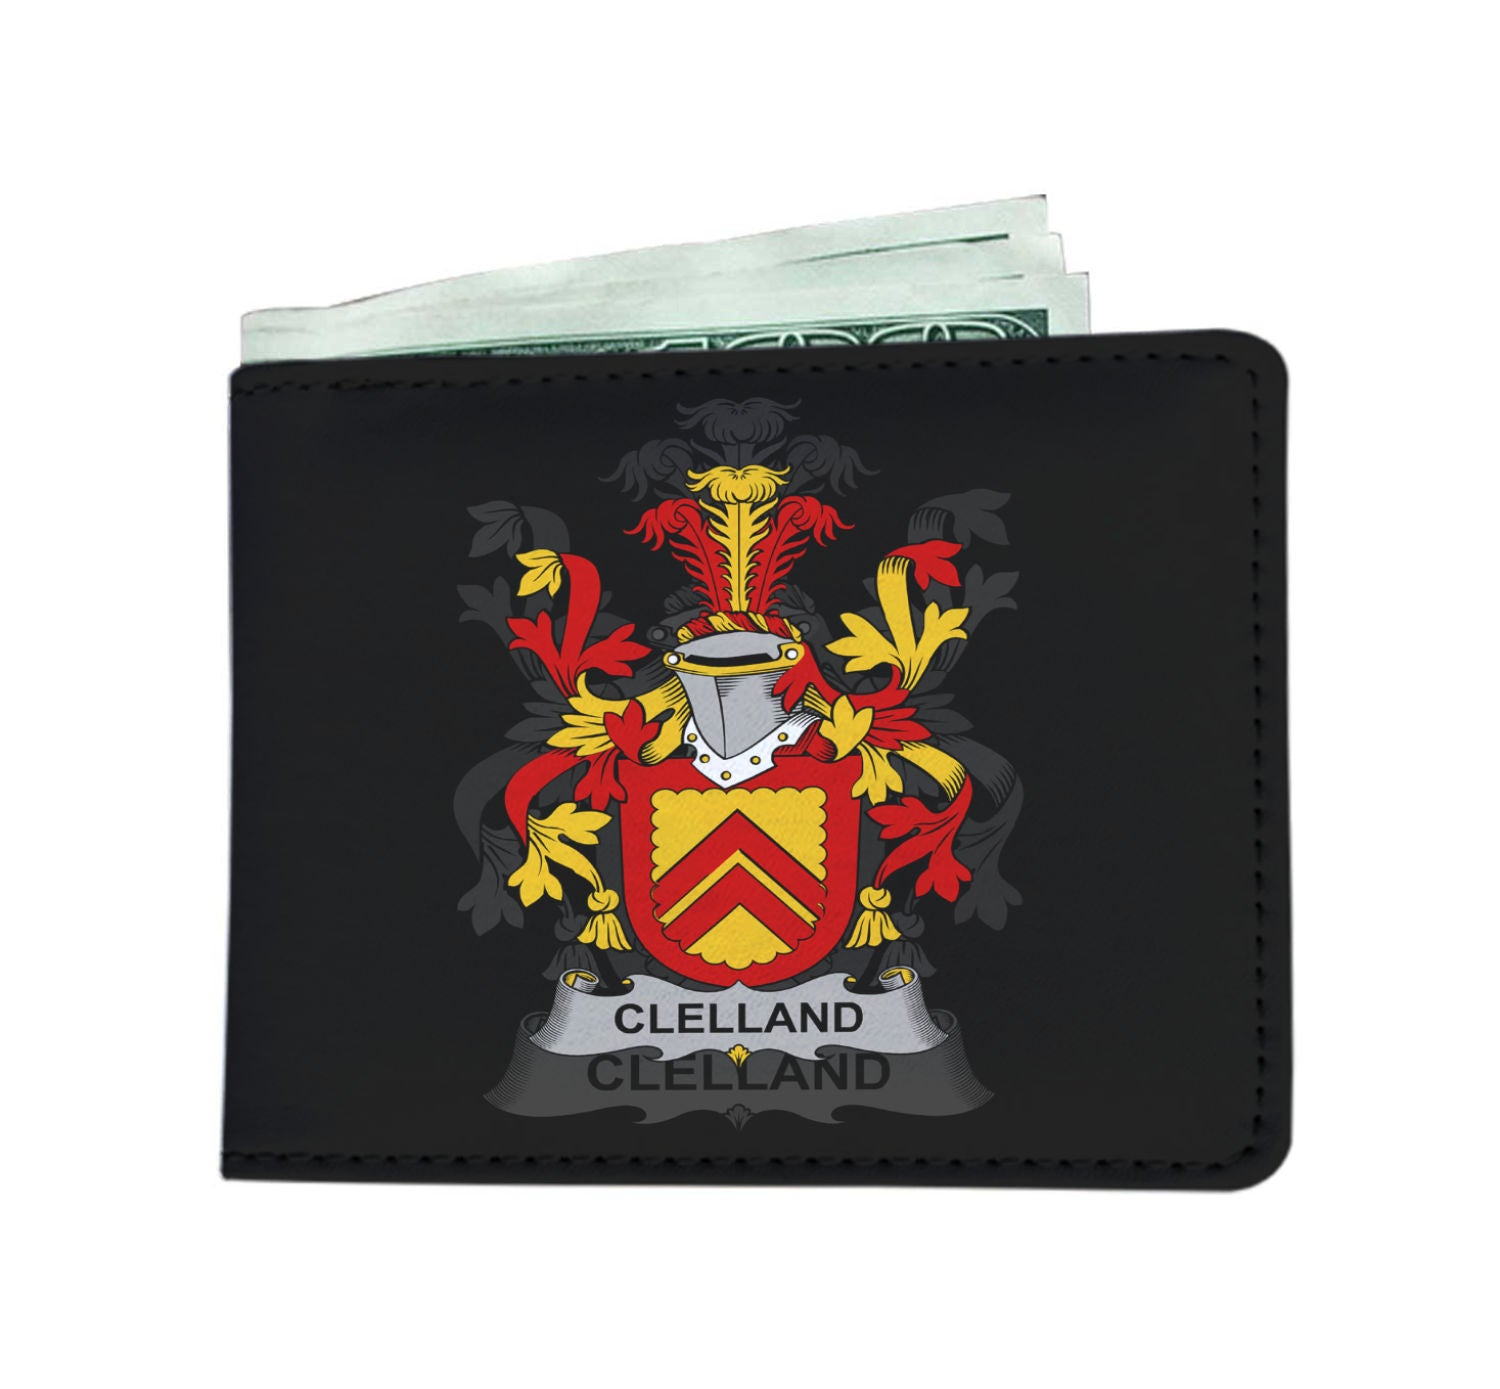 Clelland or McClelland Ireland Wallet - Irish Family | Over 1400 Irish Family Crests